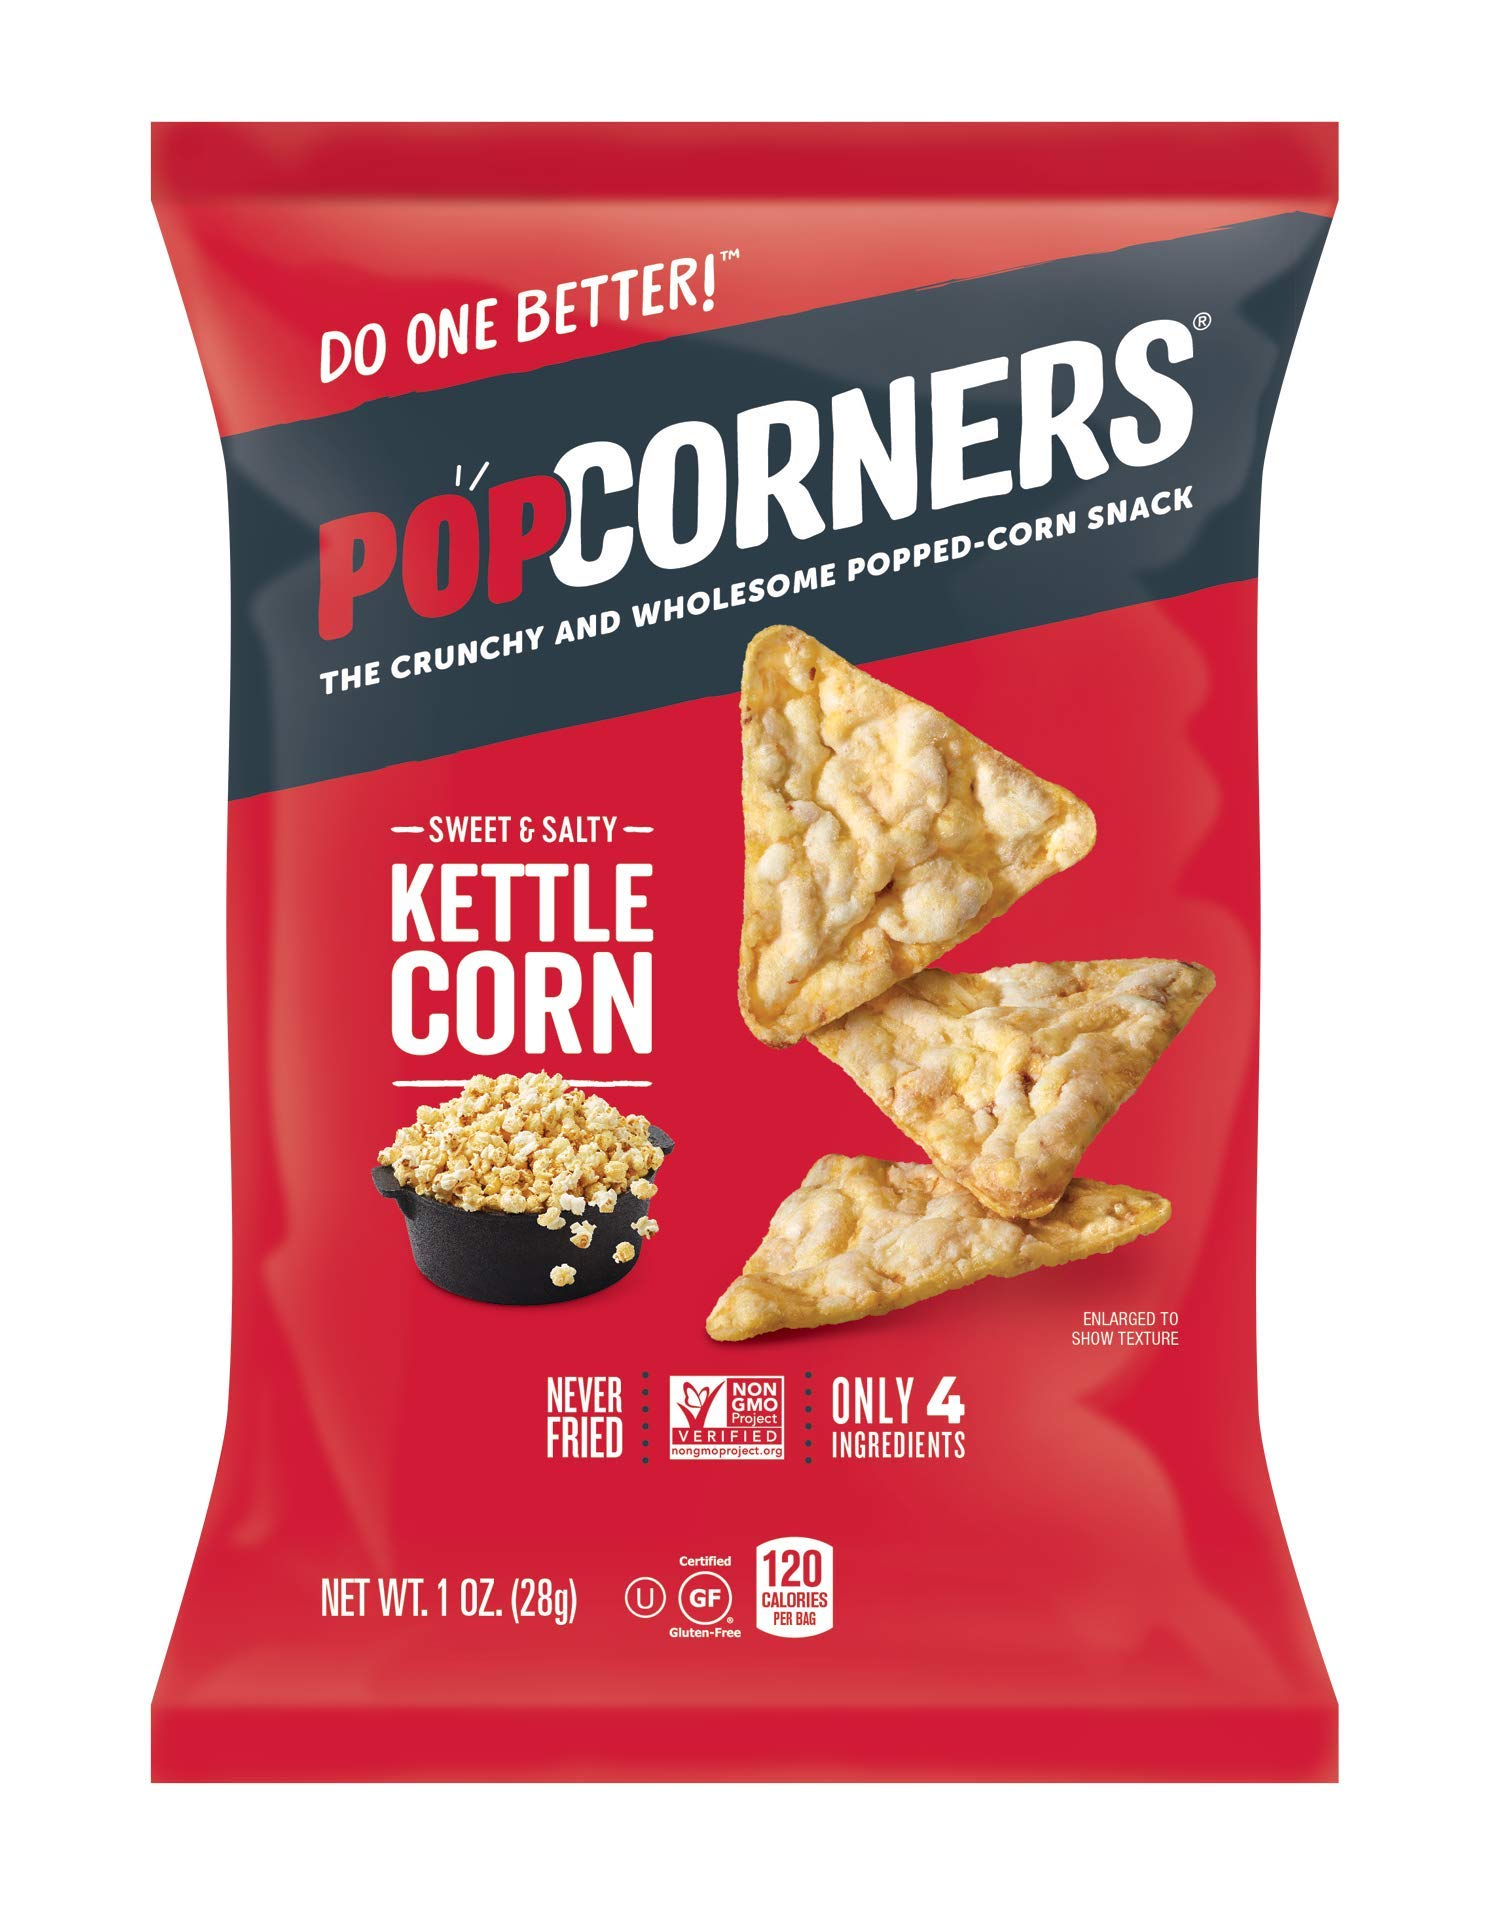 PopCorners Snacks Variety Pack | Gluten Free Snack Packs | Kettle Corn, White Cheddar, Sea Salt | (18 Pack, 1 oz Snack Bags) by Popcorners (Image #2)